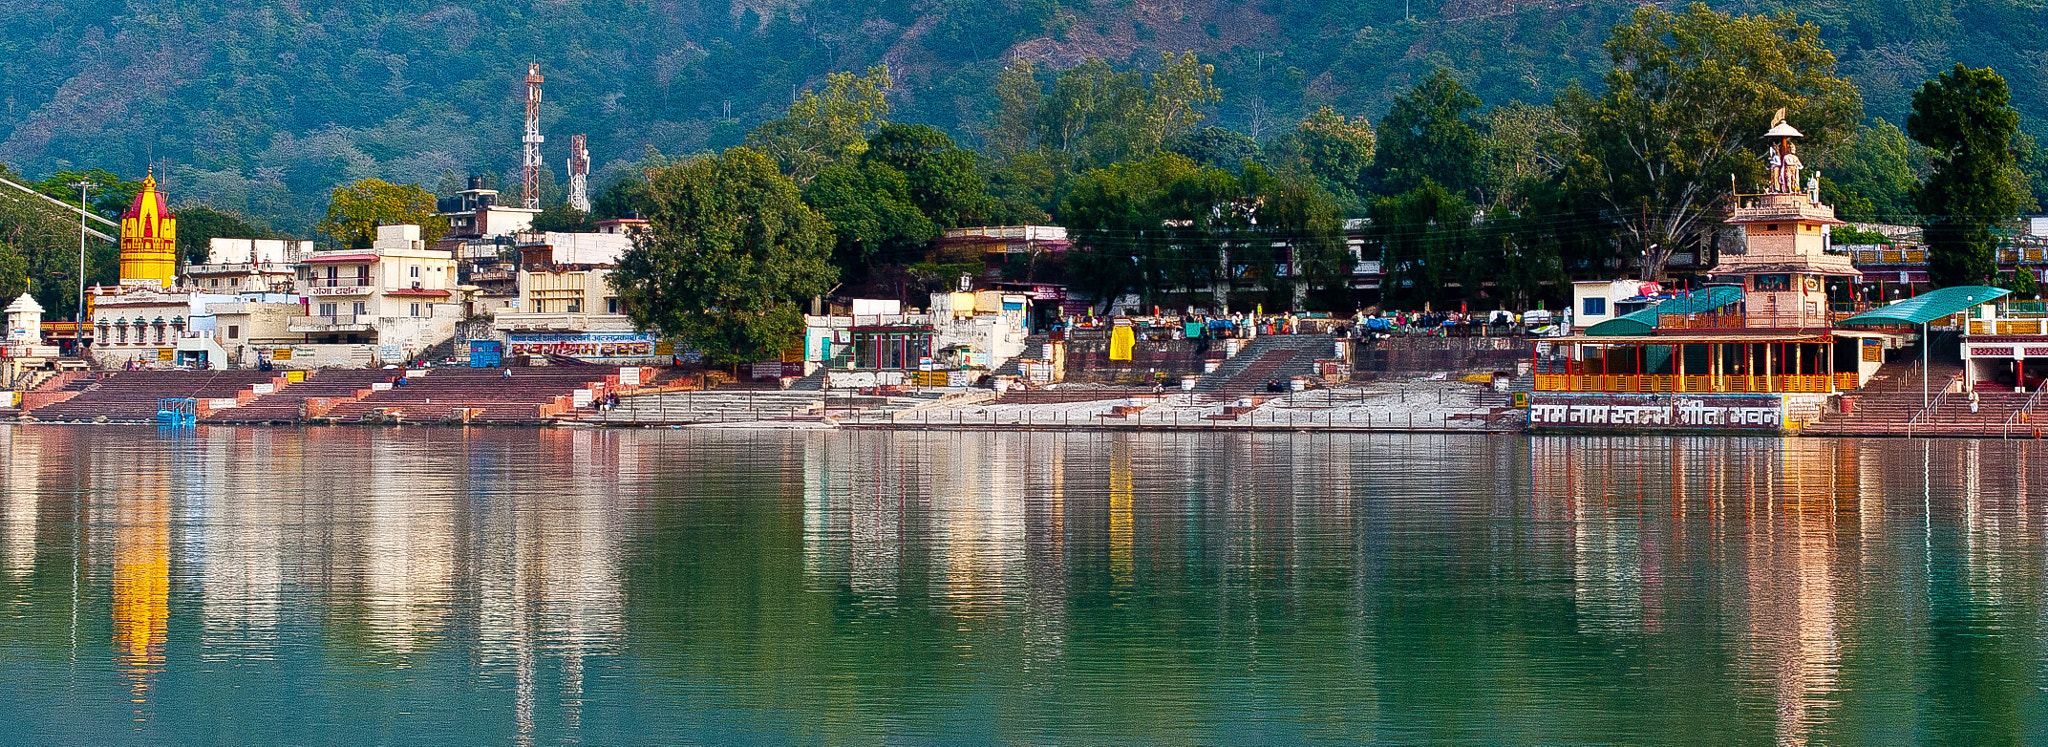 Photograph Rishikesh Vista by Neha Bhaskar on 500px